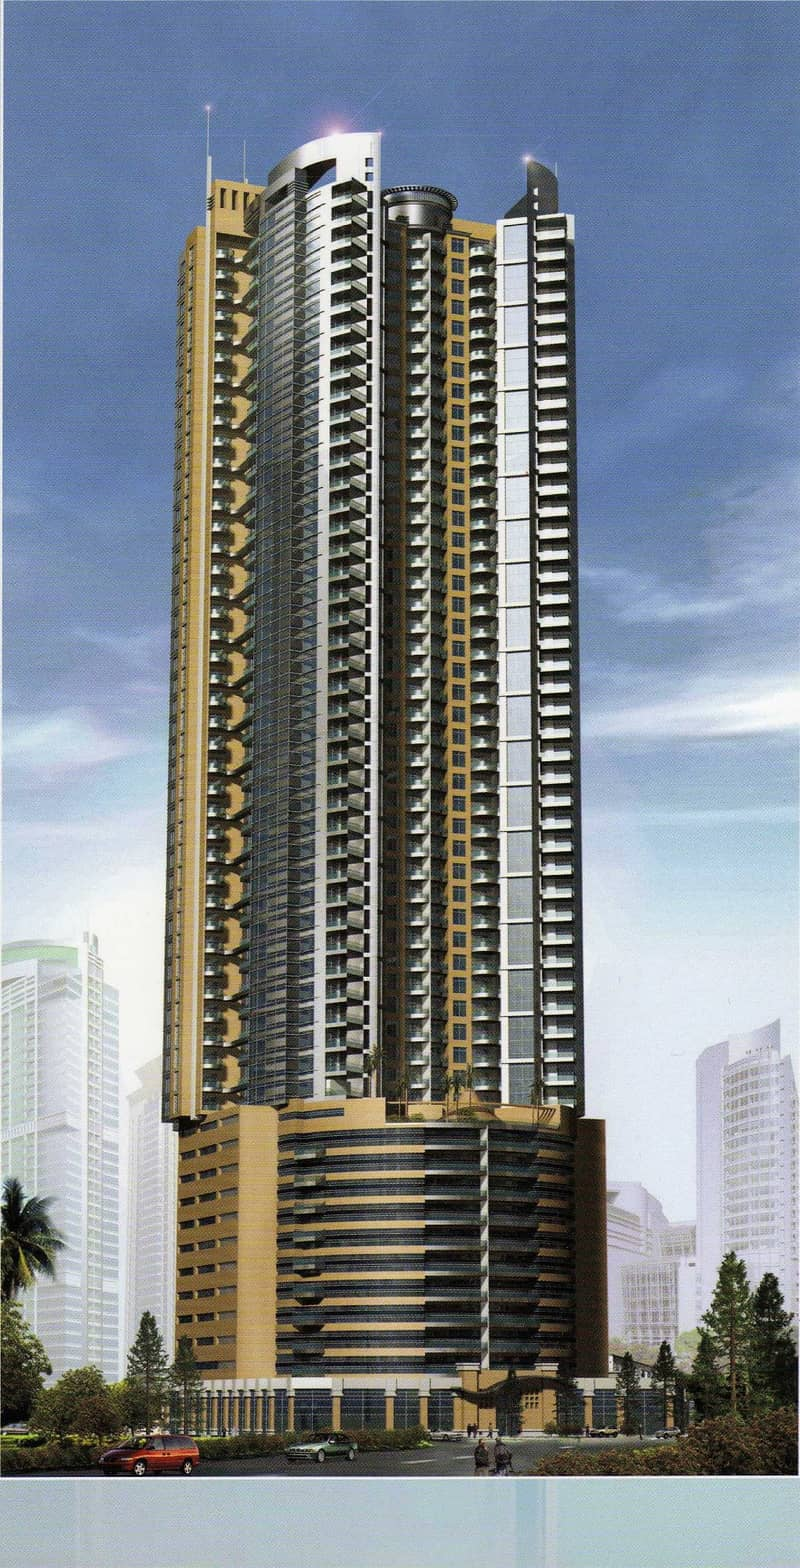 Hot Deal!! 1Bedroom Hall w/ city view in Corniche Tower at low, low price!